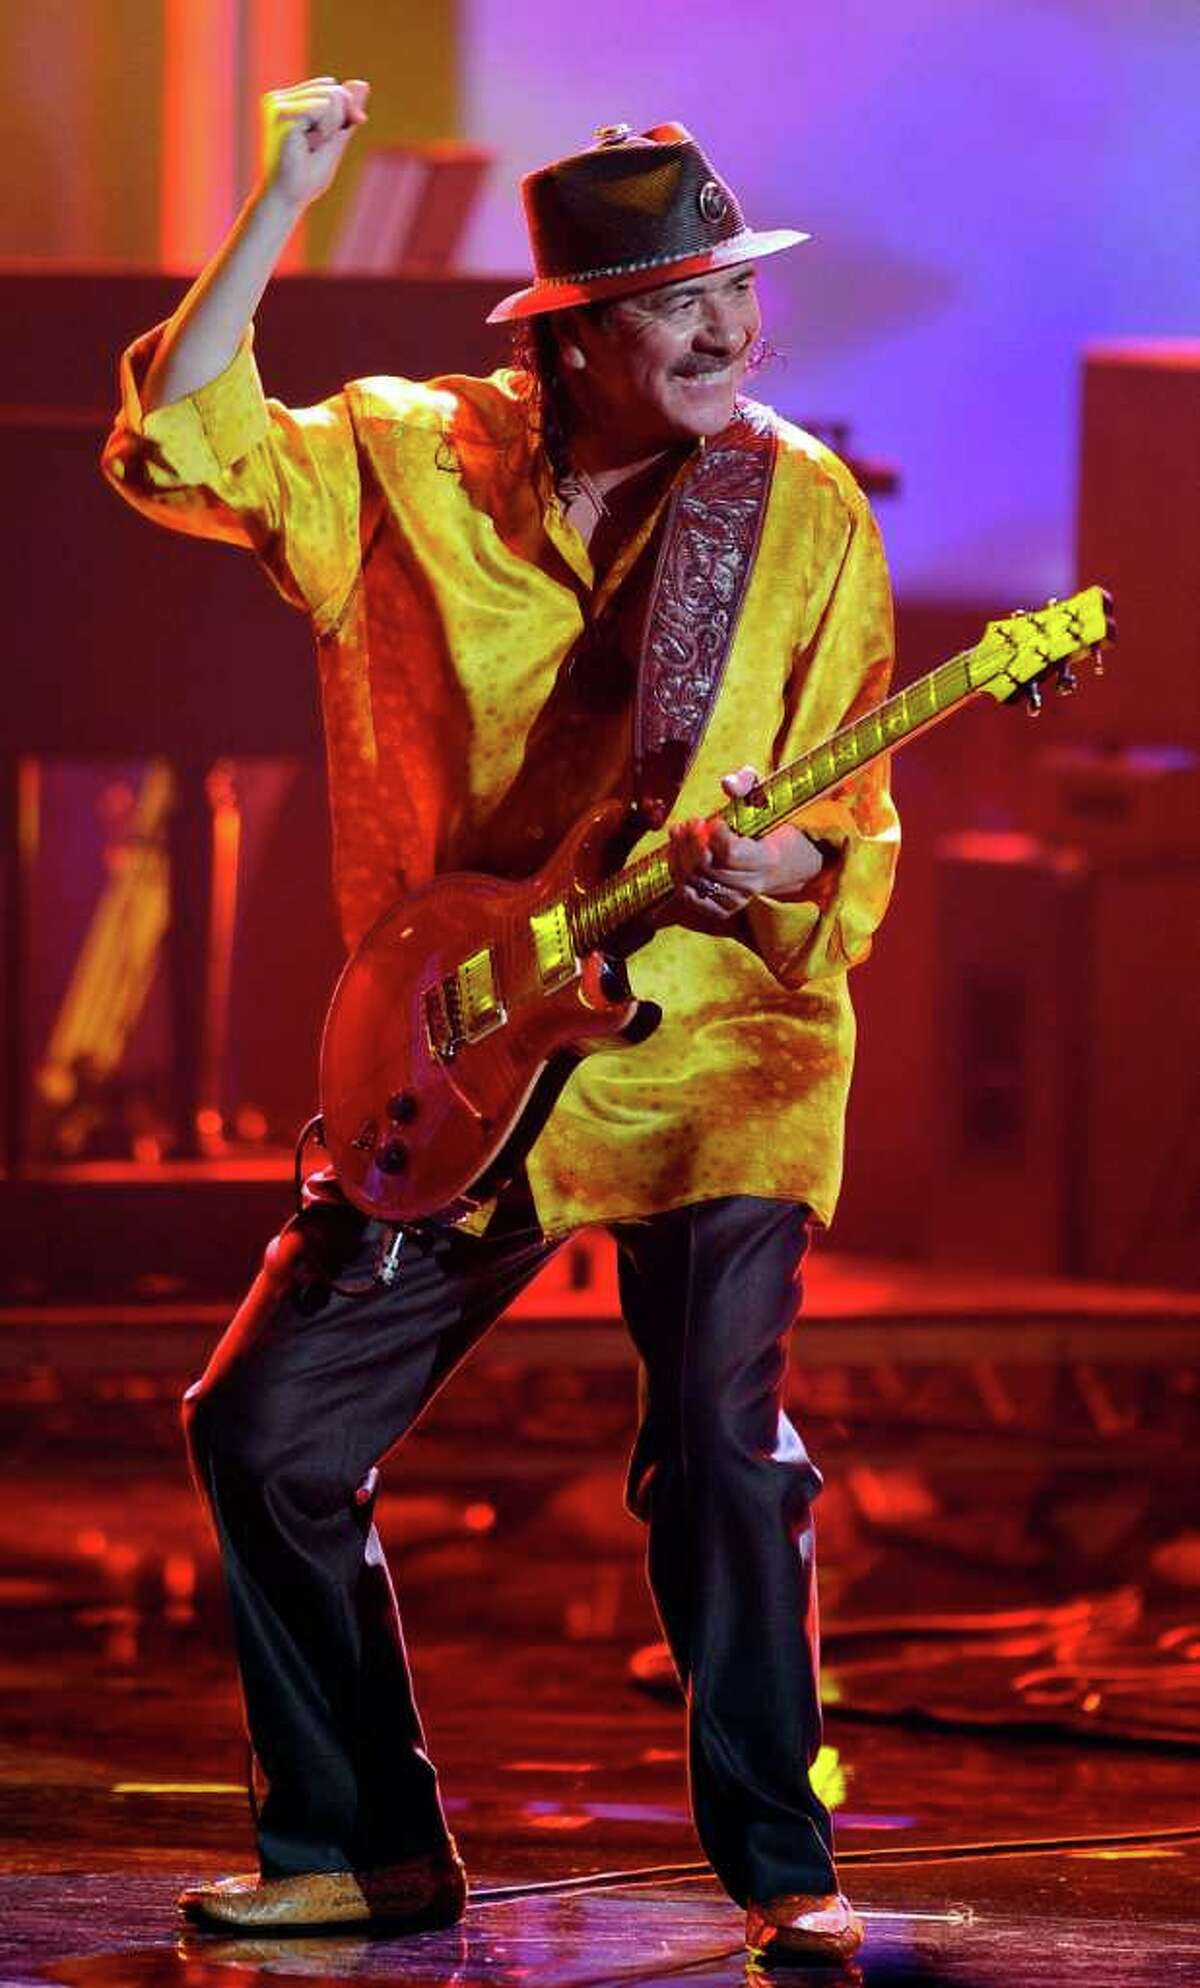 Musician Carlos Santana performs onstage during the 2010 American Music Awards held at Nokia Theatre L.A. Live on November 21, 2010 in Los Angeles, California.